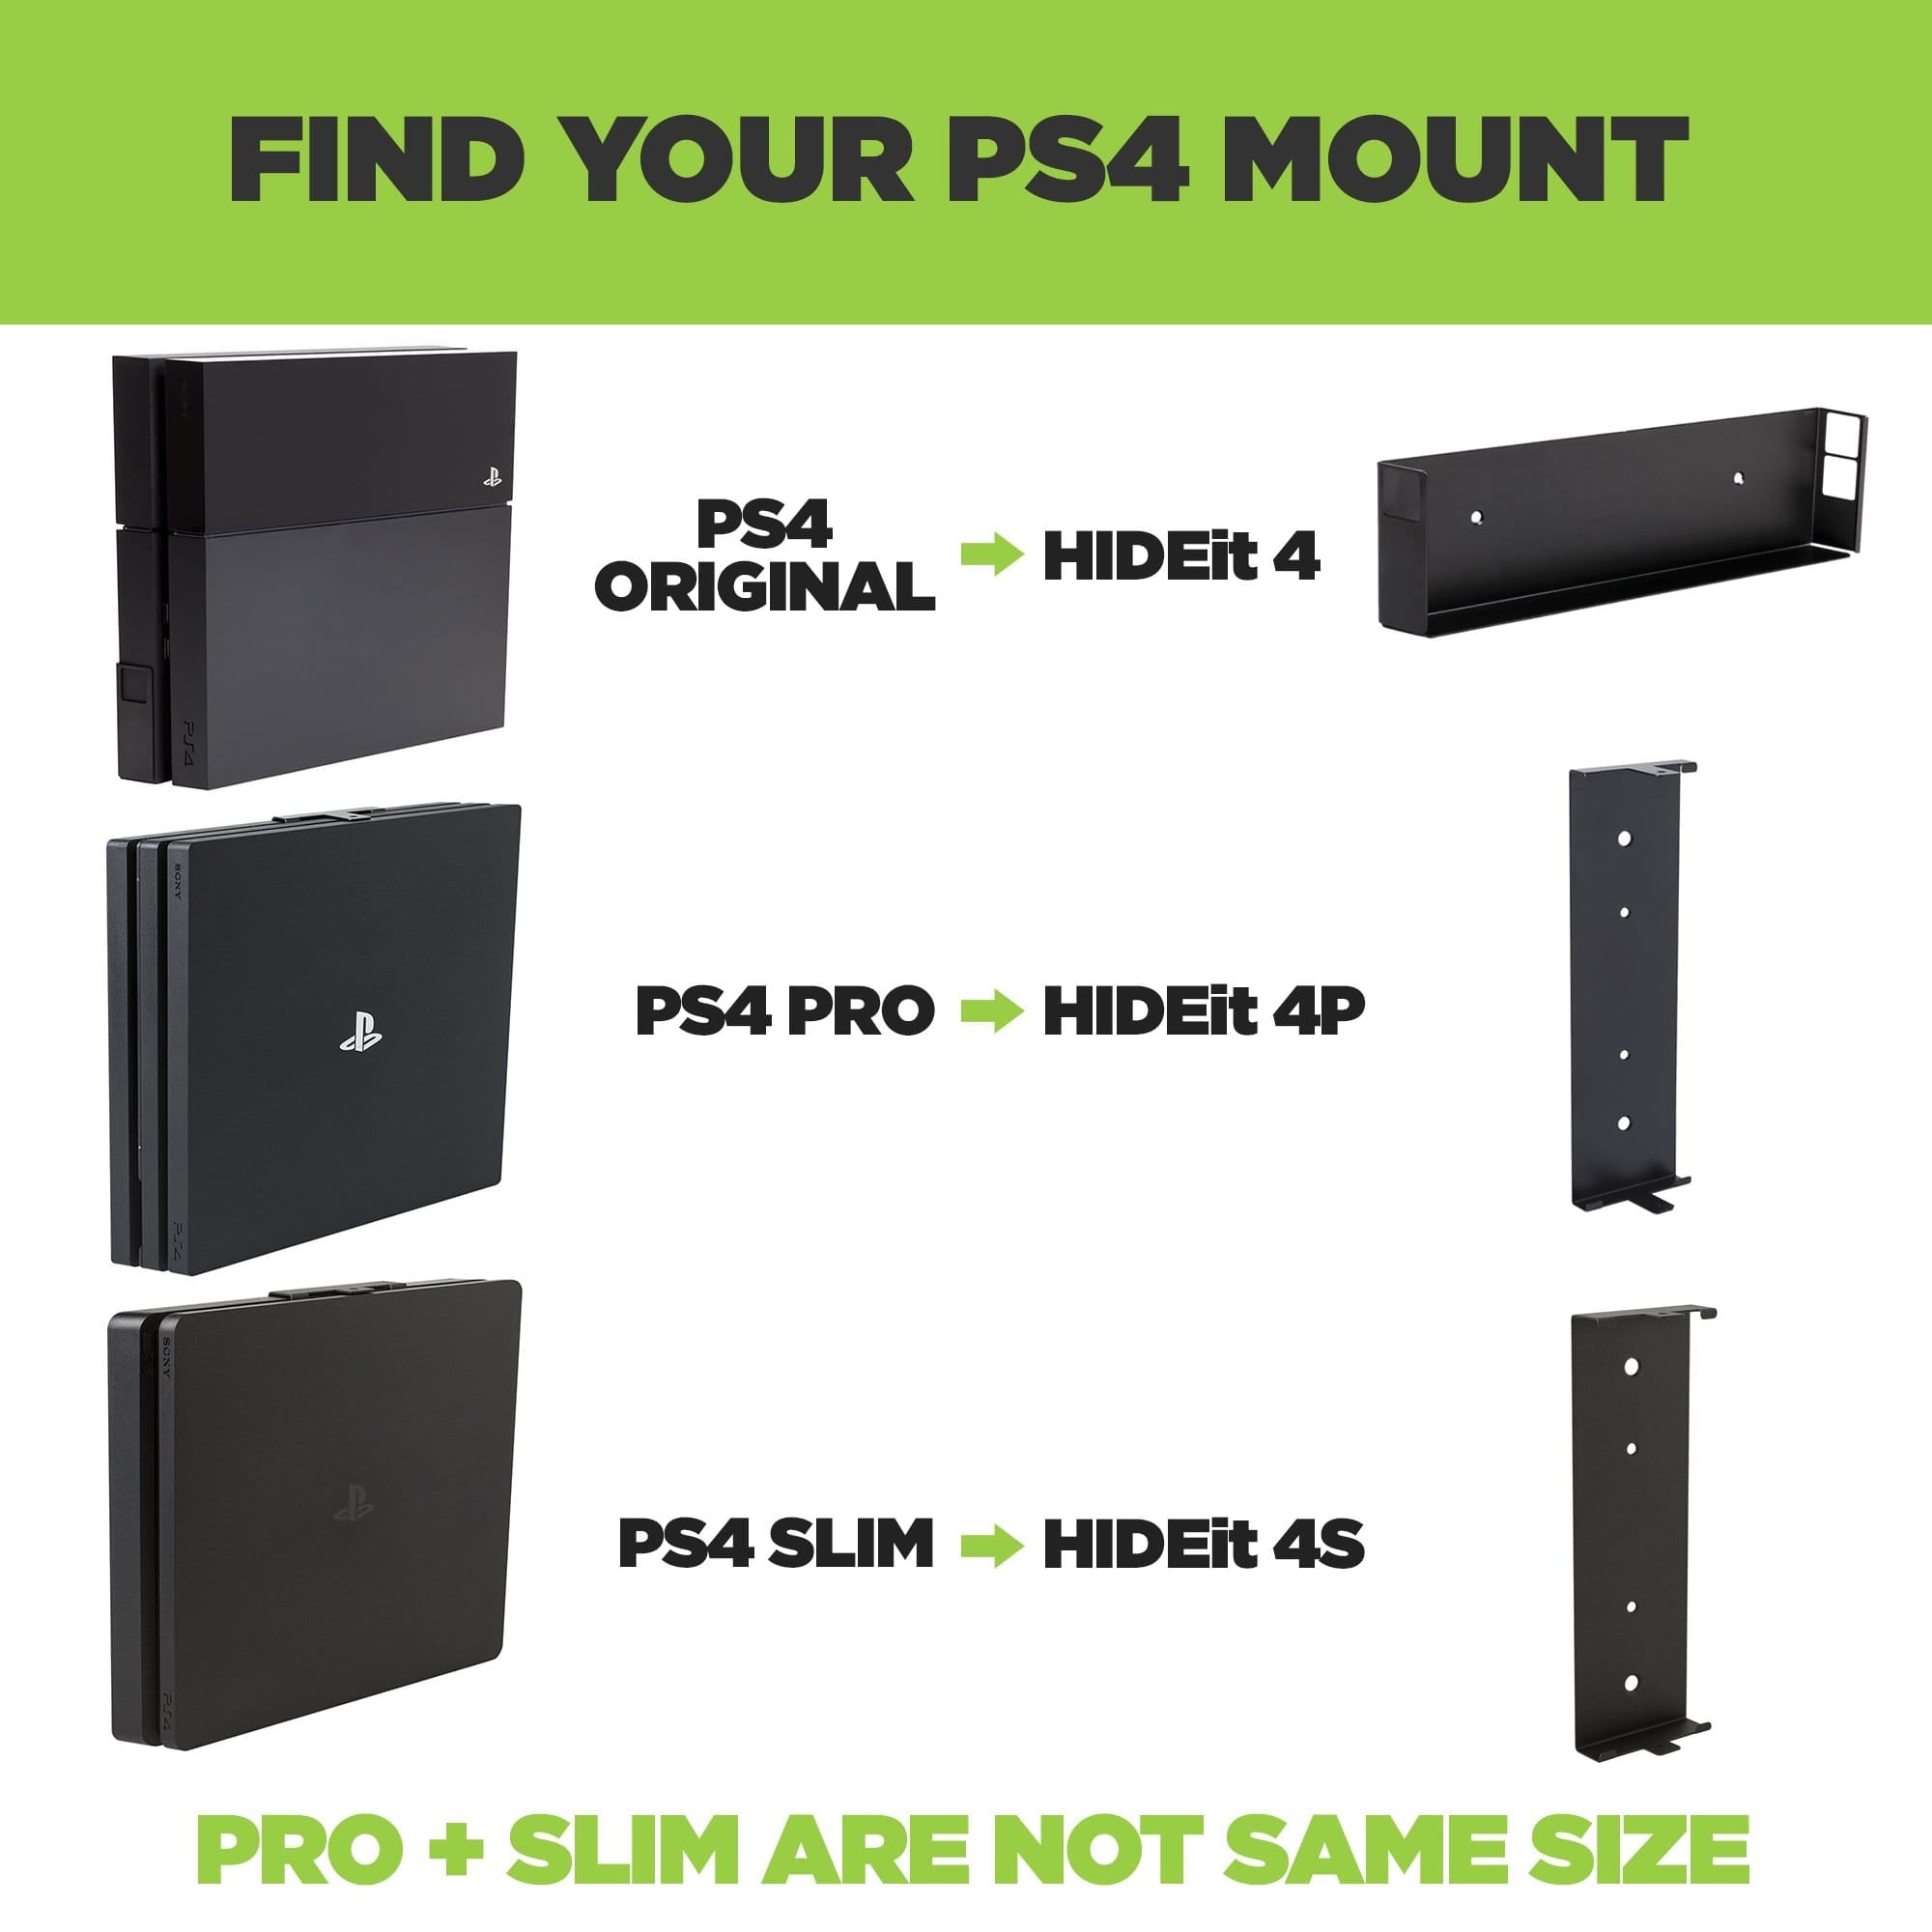 Ps4 Pro Wall Mount Hideit Mount For Playstation 4 Pro Game Console Hideit Mounts